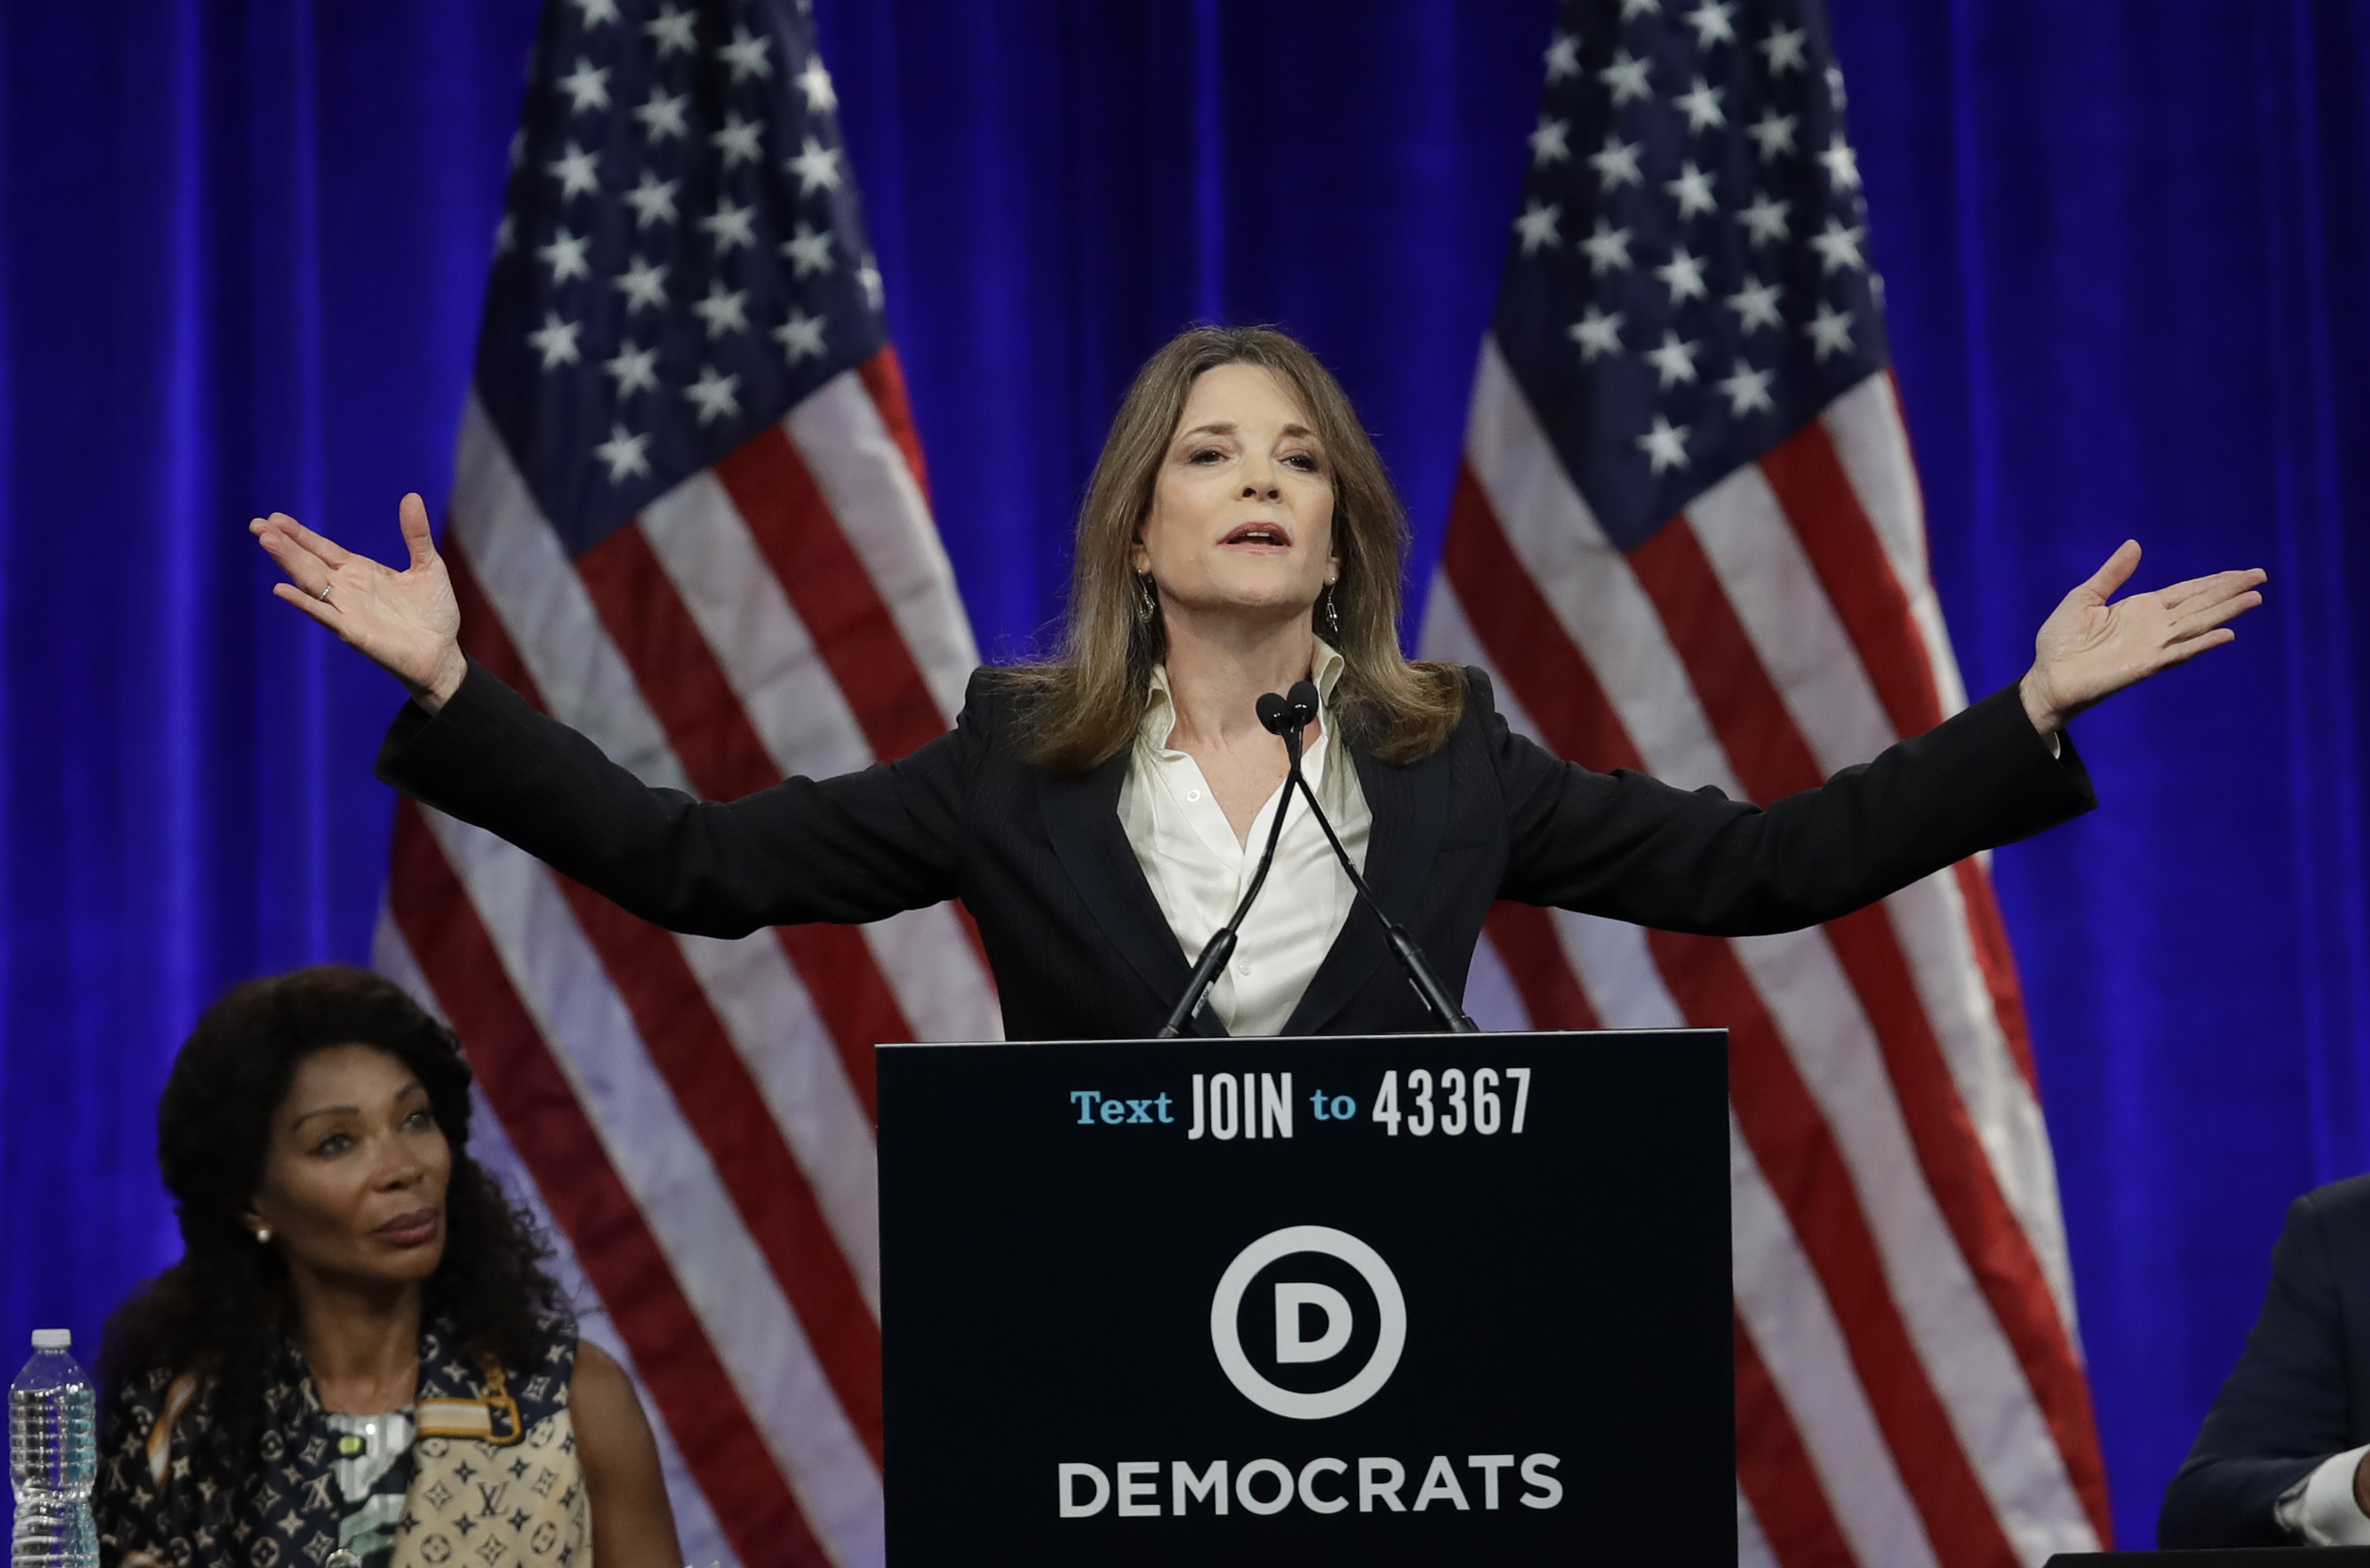 2020 candidate Marianne Williamson: 'I didn't think the left was so mean'